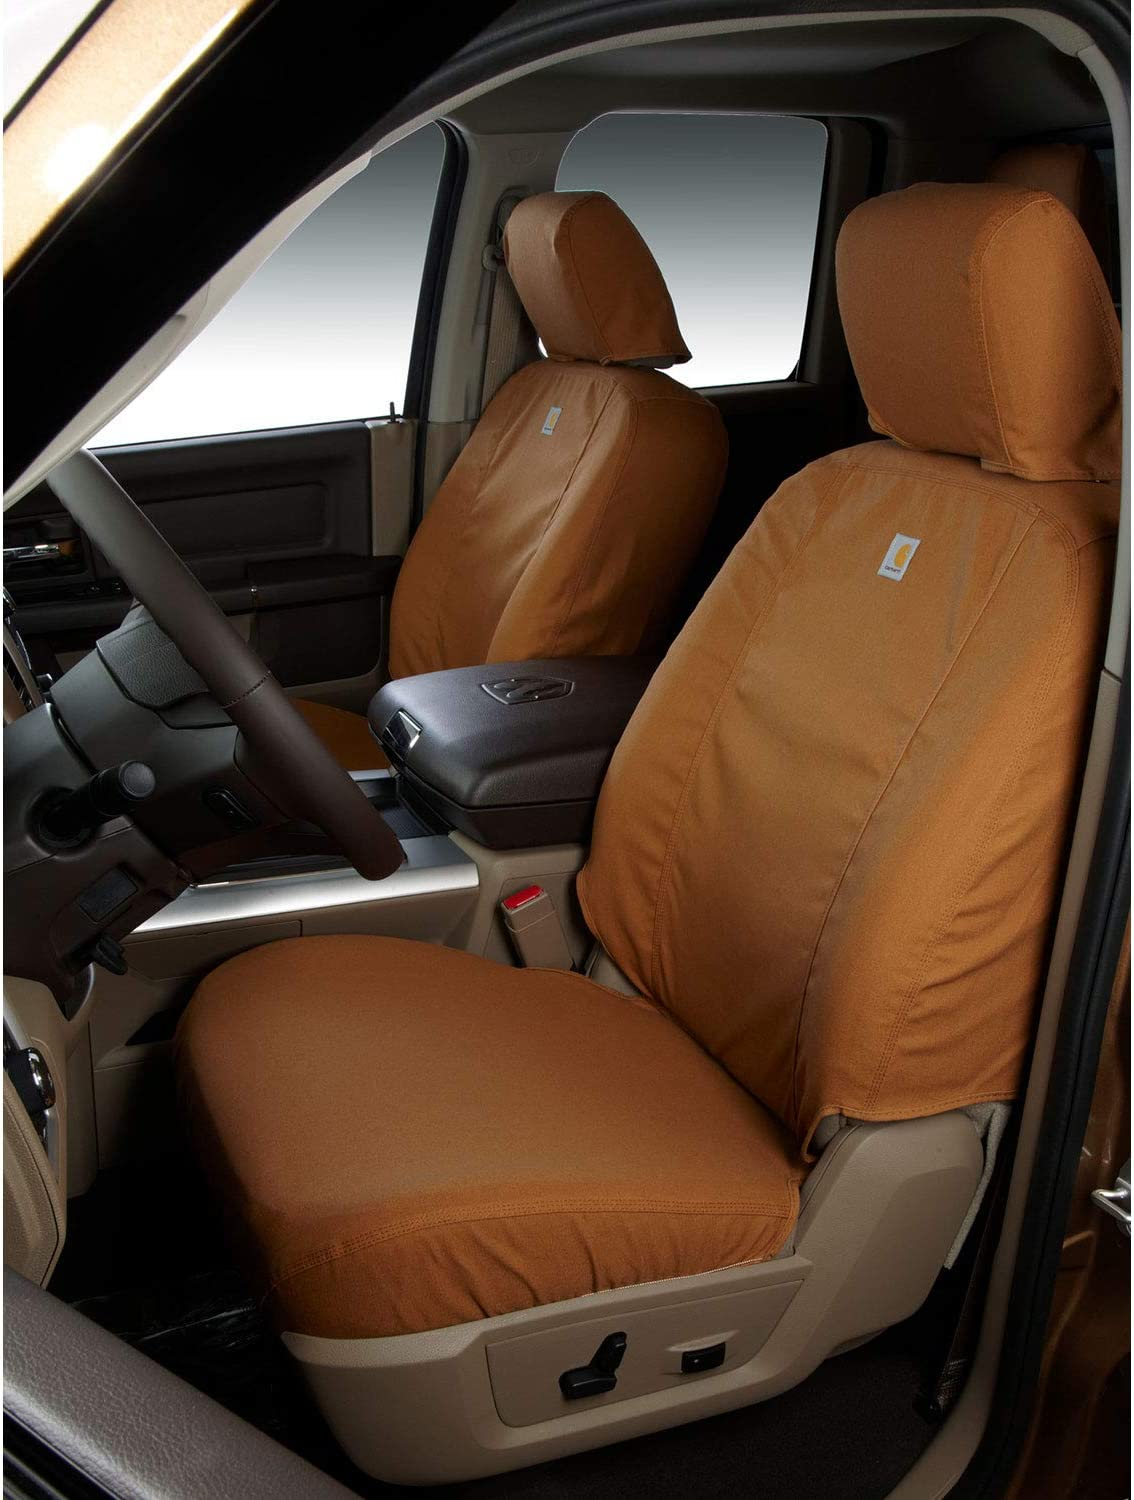 Covercraft Carhartt SeatSaver Third Row Custom Fit Seat Cover for Select Cadillac//Chevrolet//GMC Models Duck Weave Brown